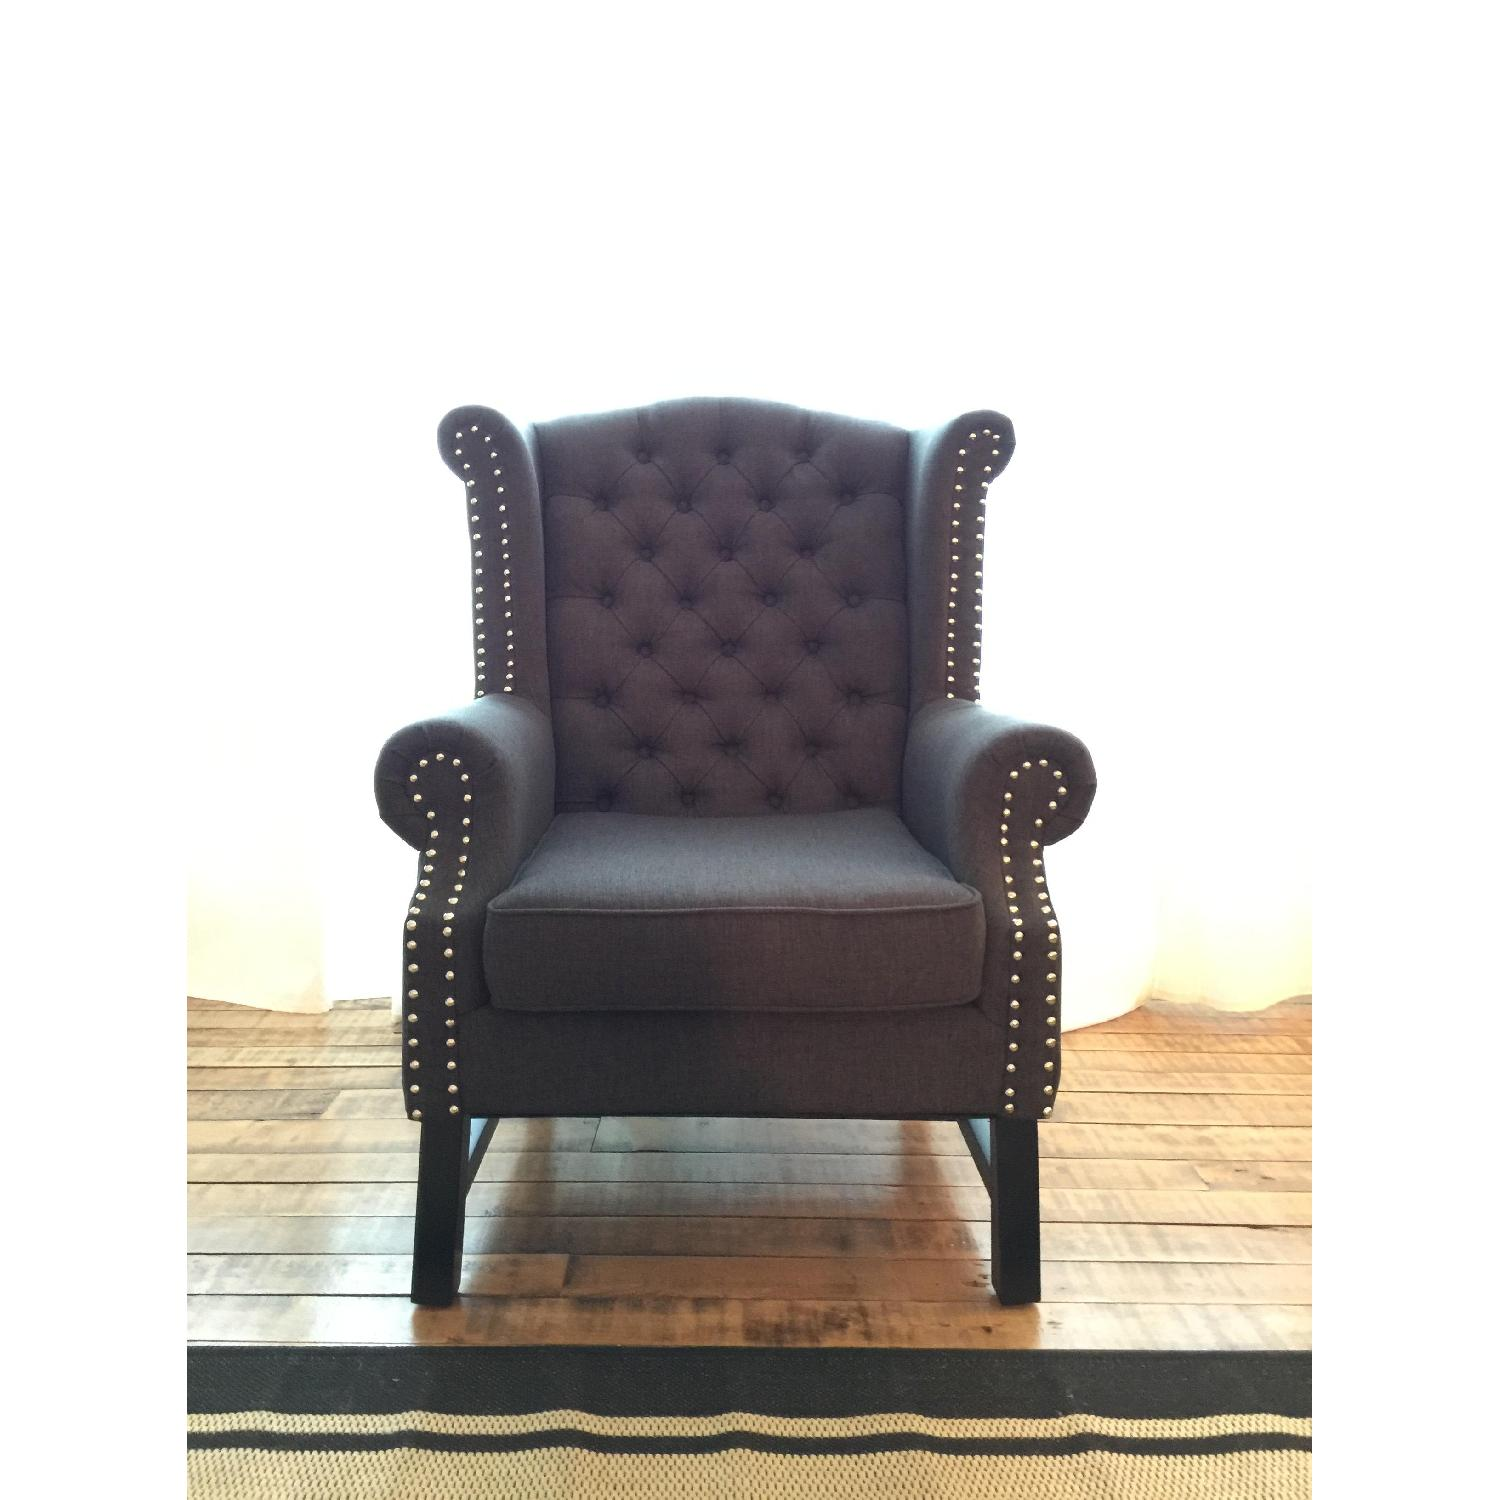 Baxton Studio Grey Linen Armchair w/ Nail Head Trim - image-1